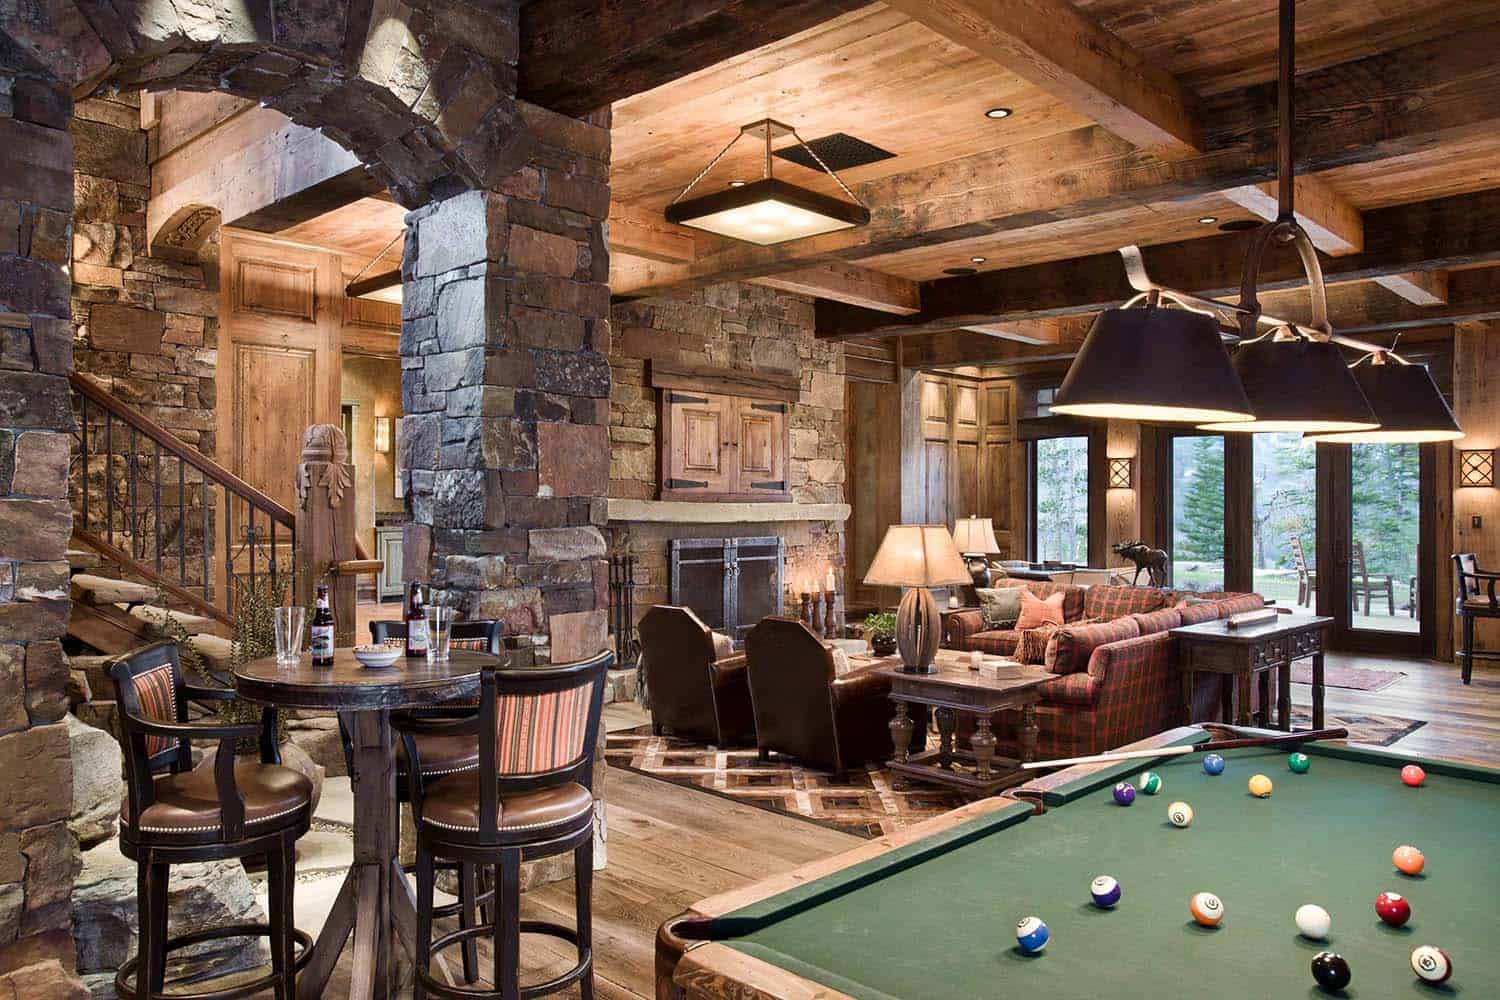 residence-rustic-game-room